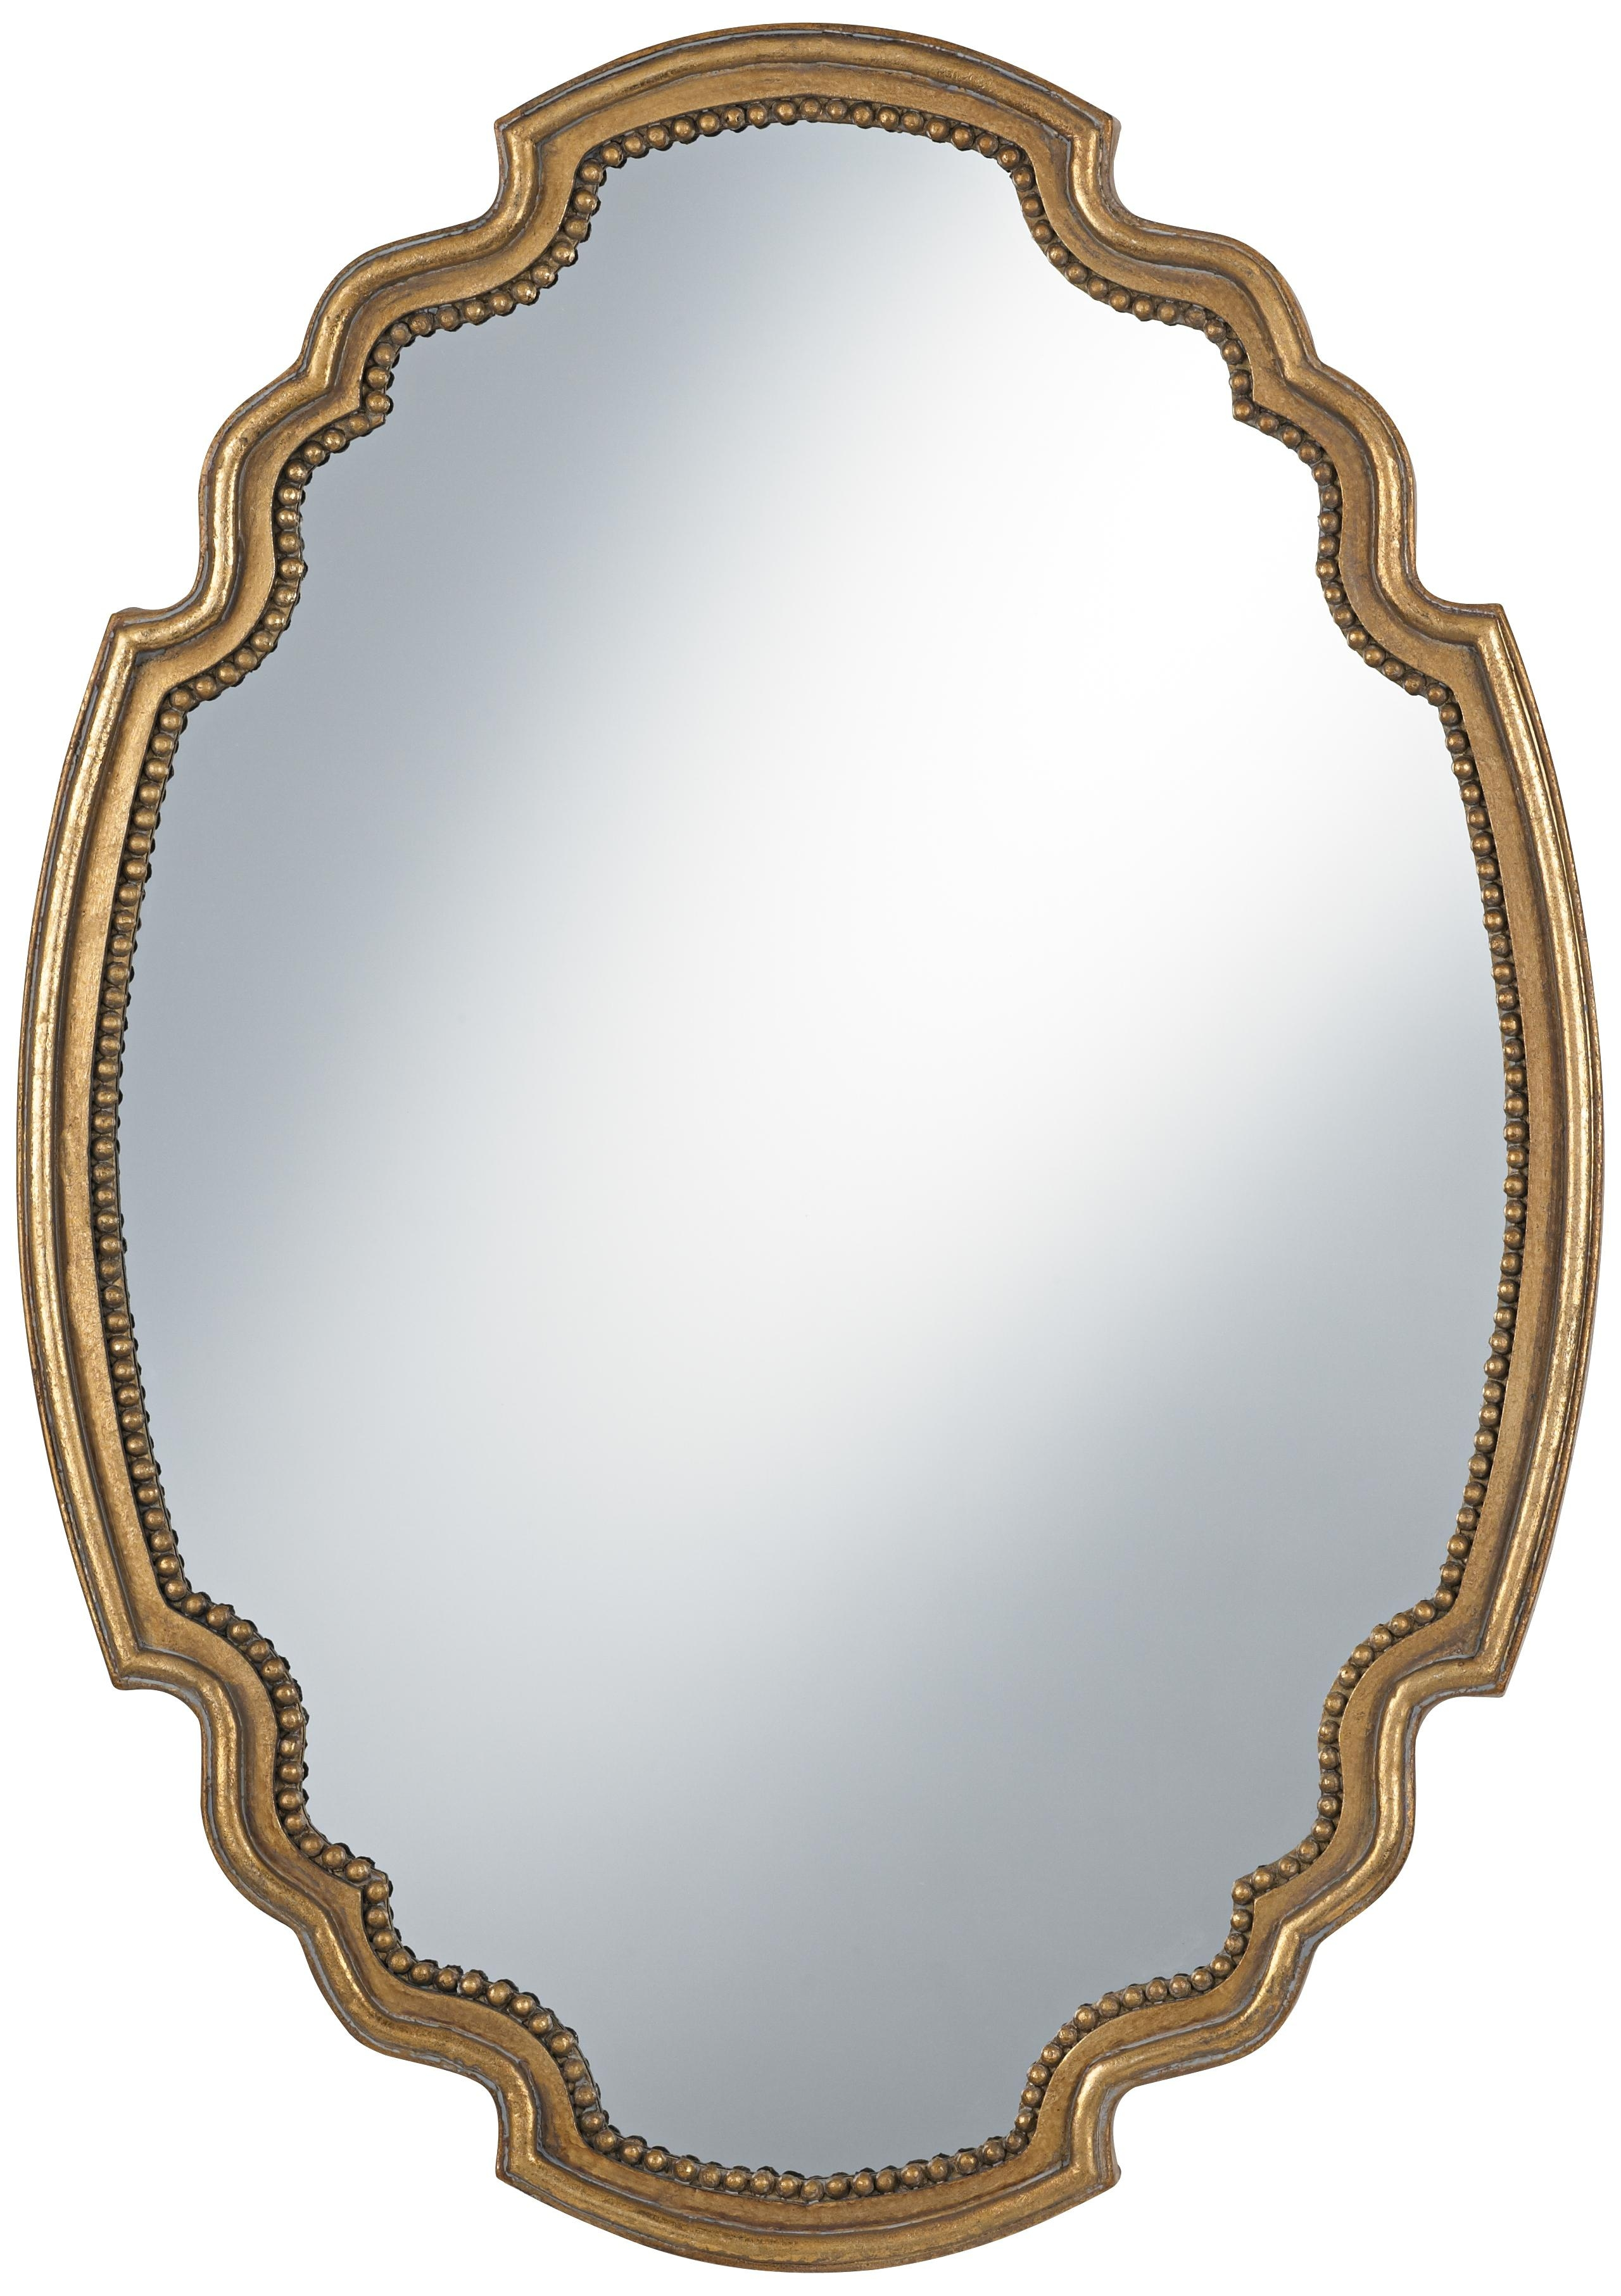 Uttermost Terelle Antique Gold 39 High Oval Wall Mirror For Antique Gold Mirrors (Image 13 of 15)